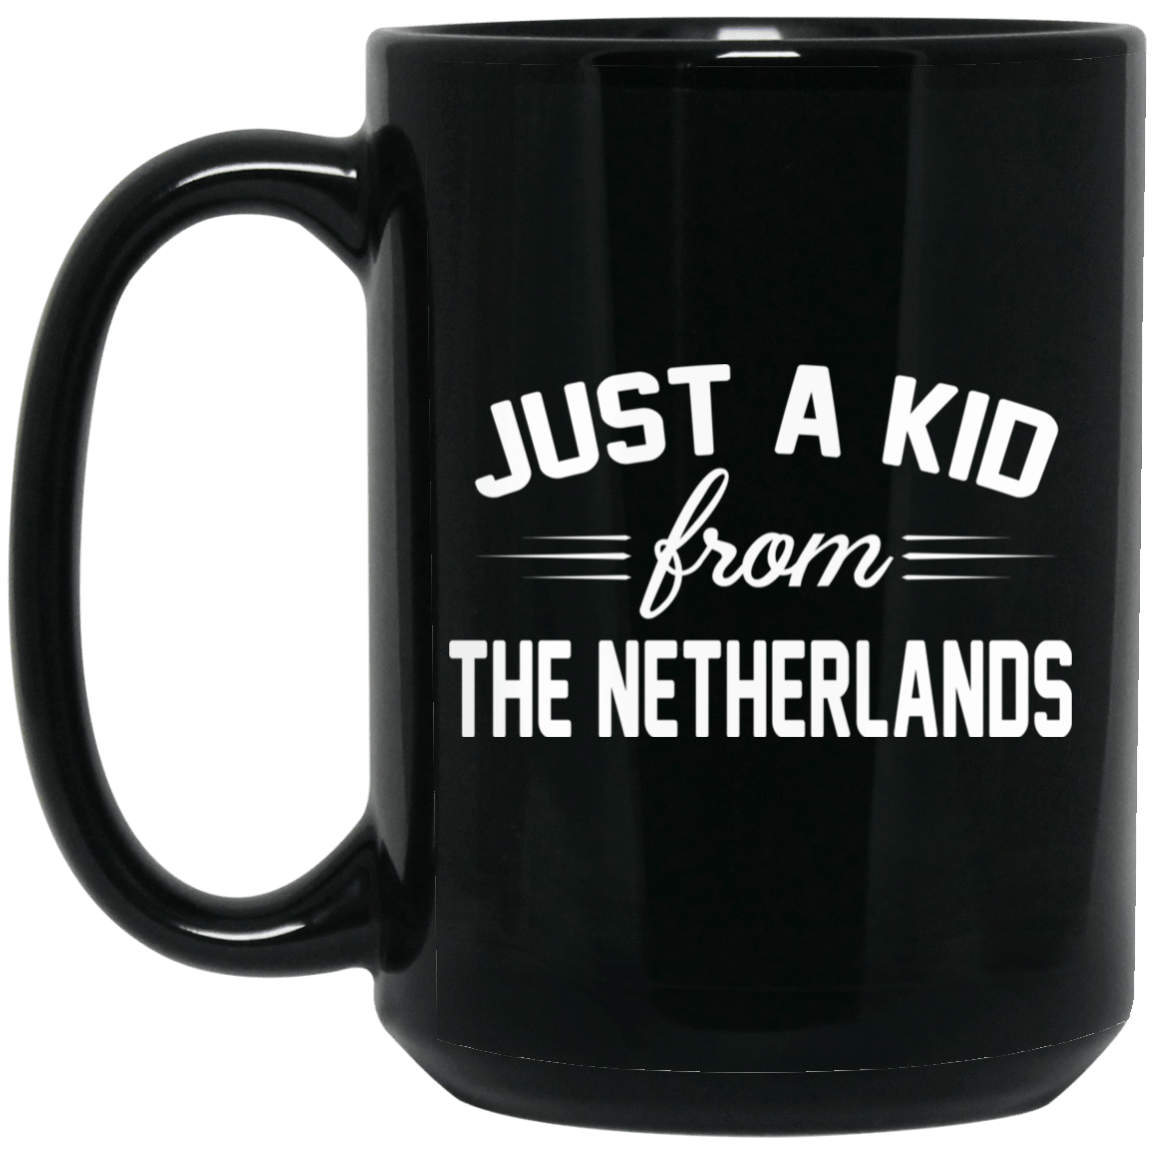 Just A Kid Store | The Netherlands Mug 1066-10182-72111094-49311 - Tee Ript